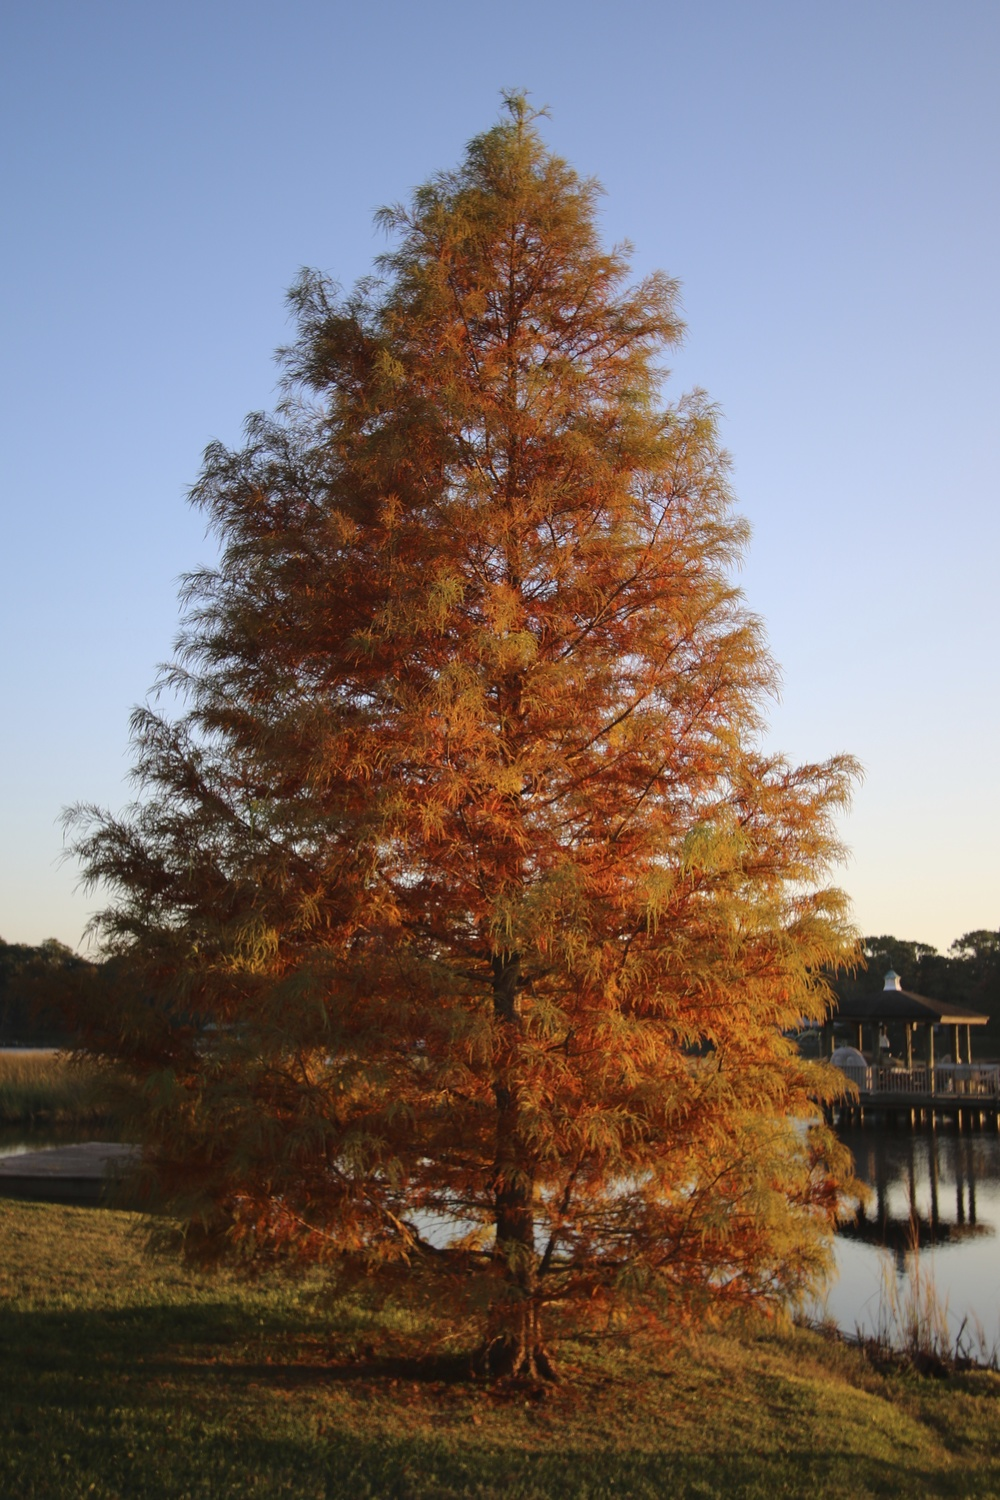 My Bald Cyprus Tree (The General) is as close to fall foliage that I see in Northern Florida.